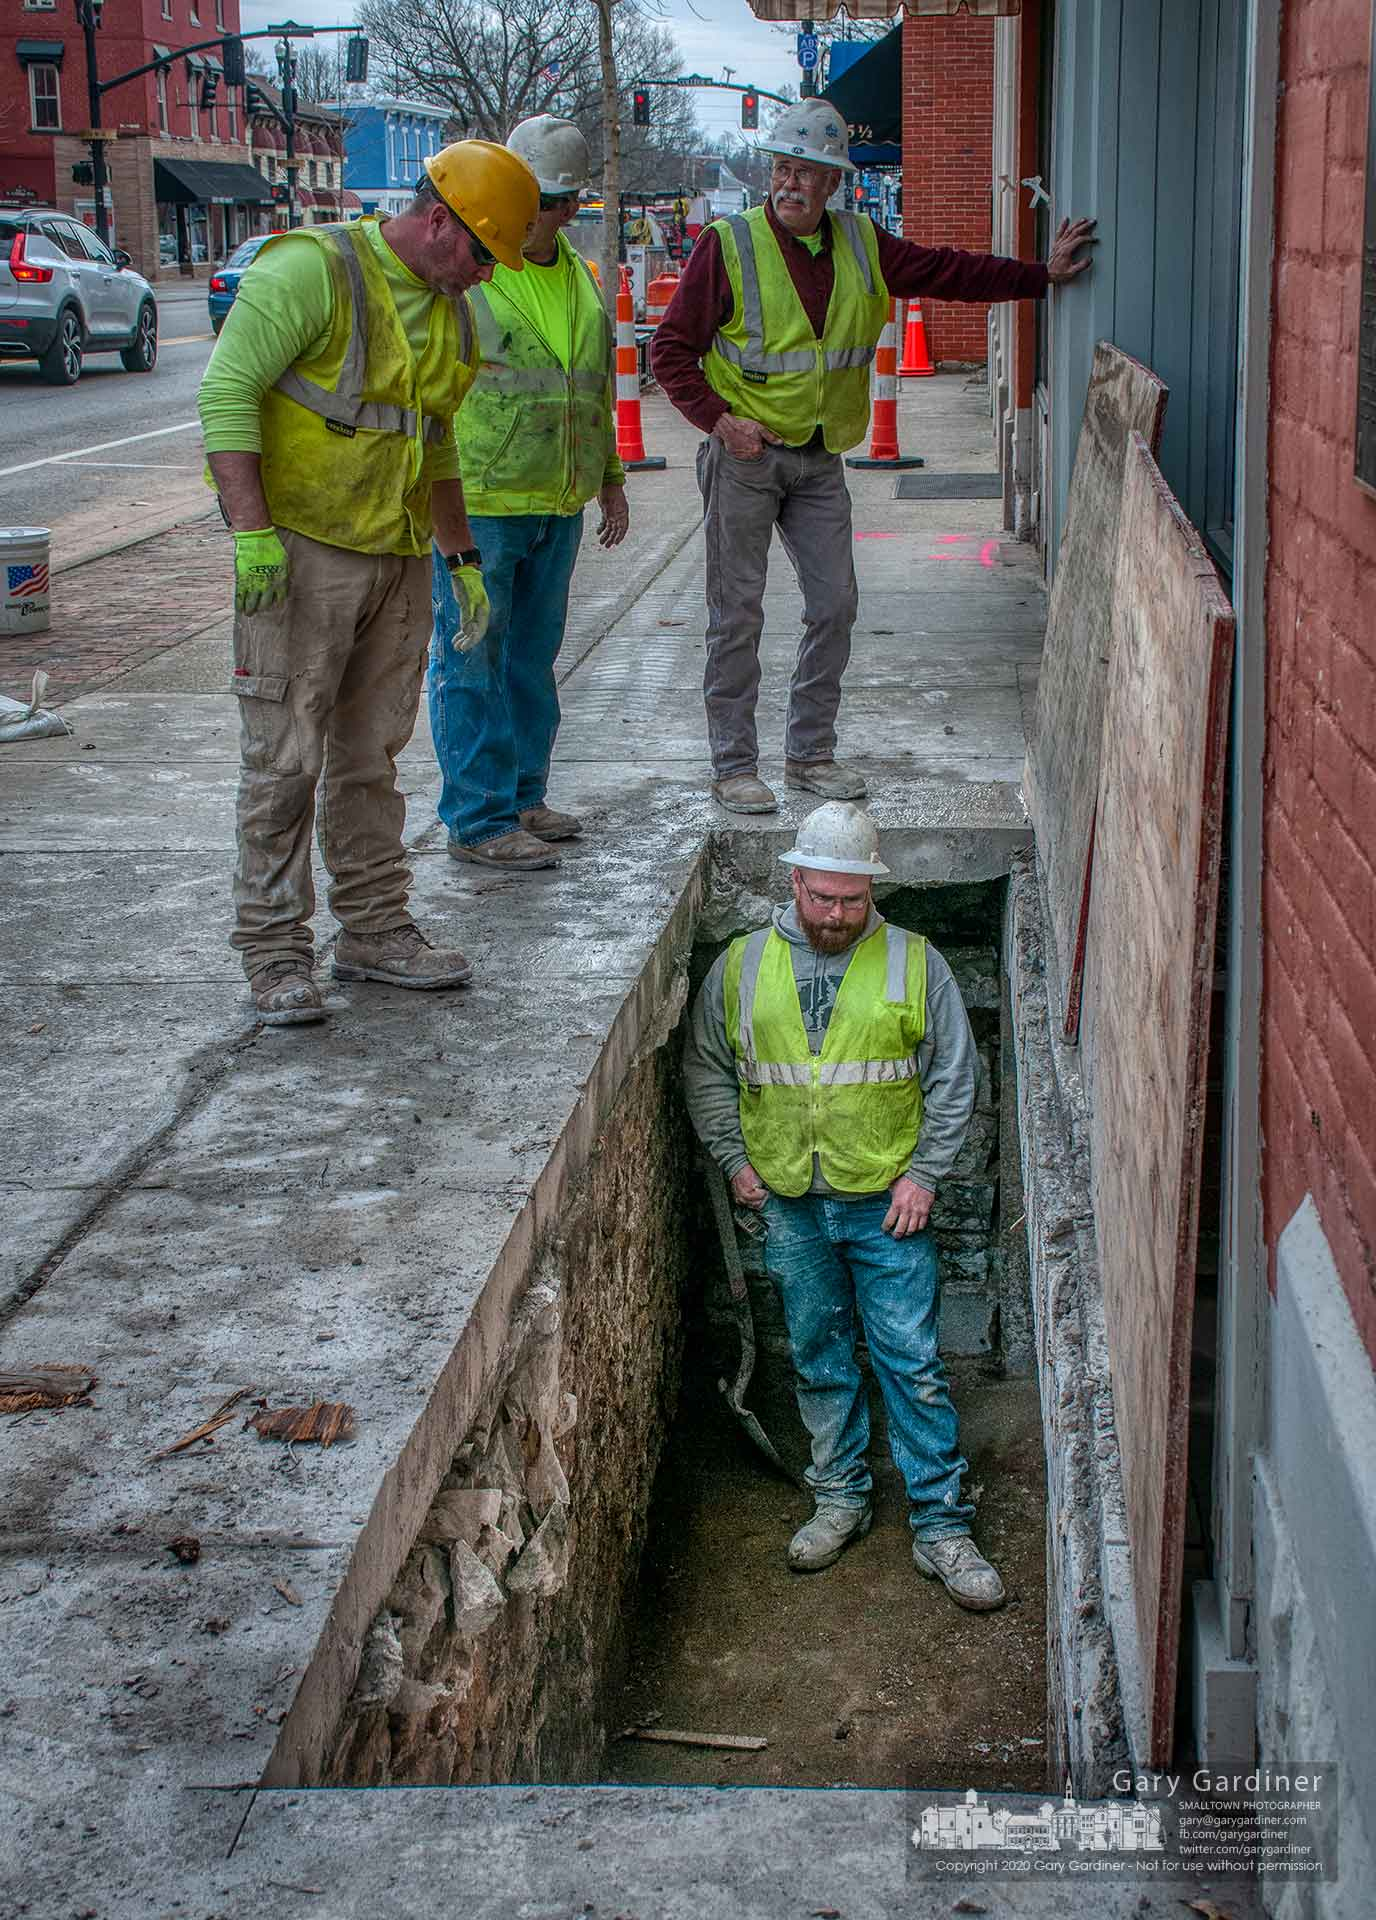 Construction workers inspect the Uptown Pharmacy basement that extended under the sidewalk in Uptown after removing the sidewalk as part of the Uptown Improvement project. My Final Photo for March 9, 2020.